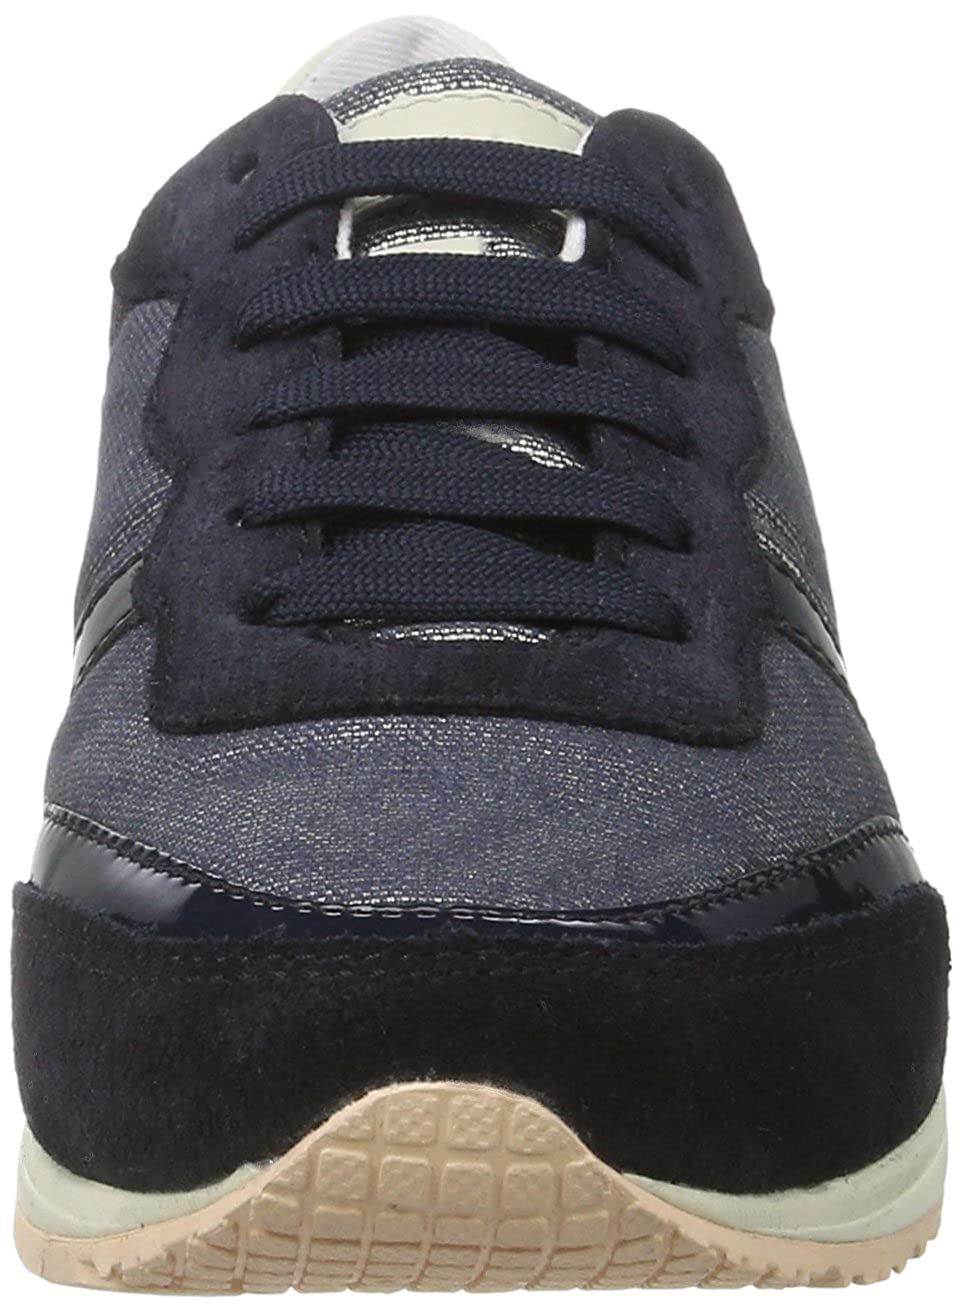 Geox Women/'s D Wisdom D Low-Top Sneakers